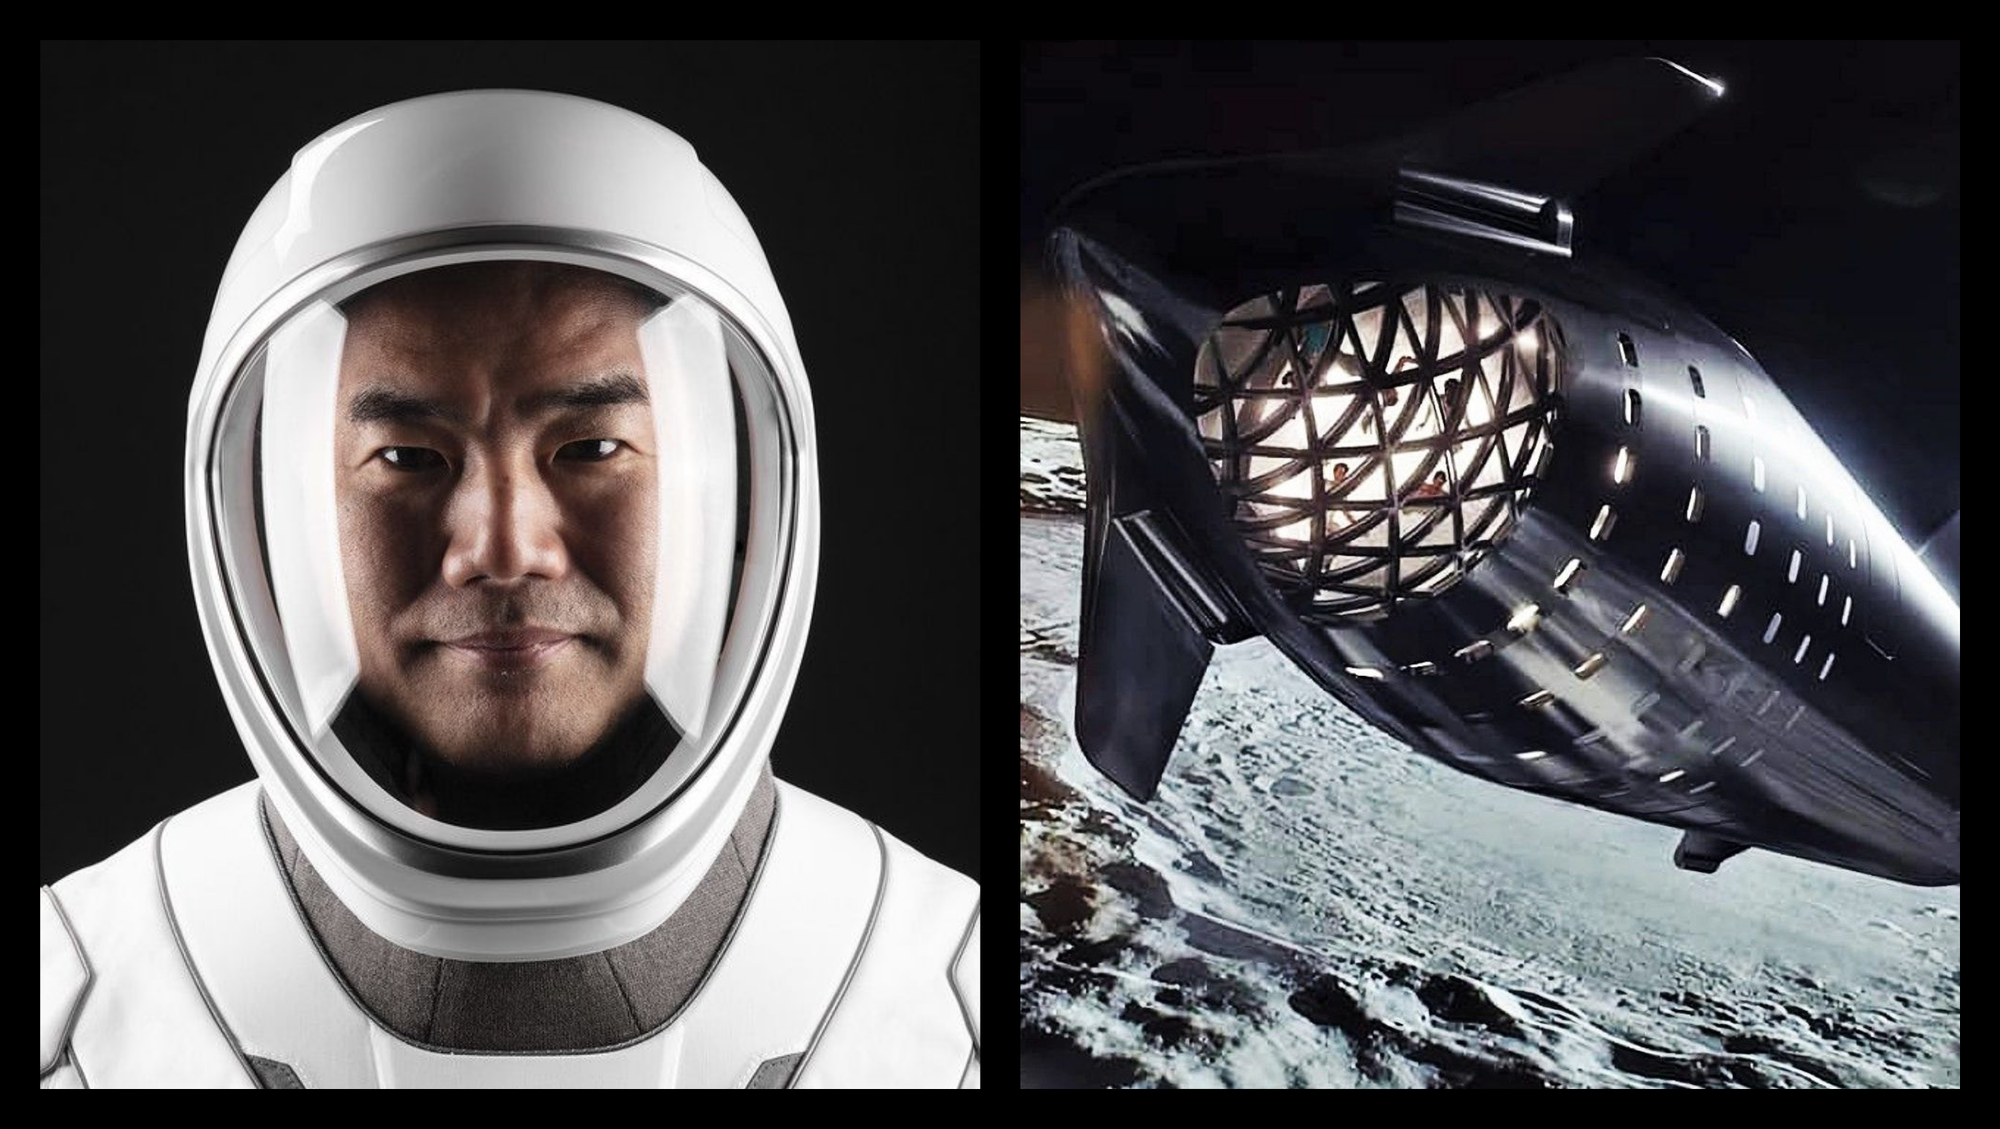 Japanese Astronaut contemplates riding SpaceX's Starship during the 'Dear Moon' voyage